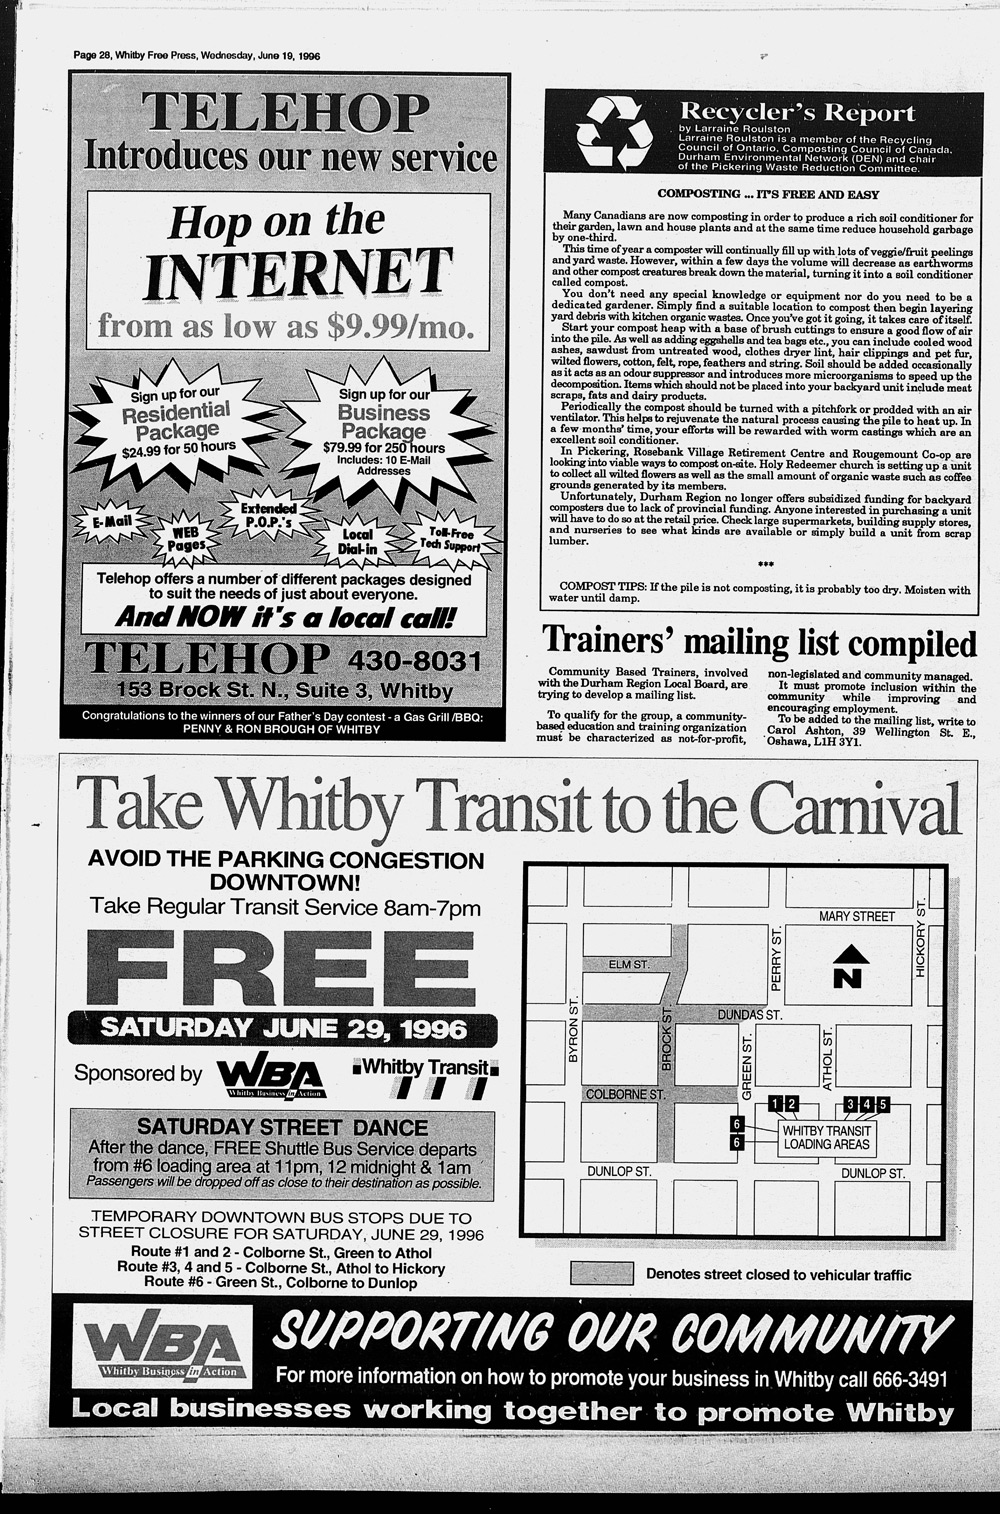 Whitby Free Press, 19 Jun 1996